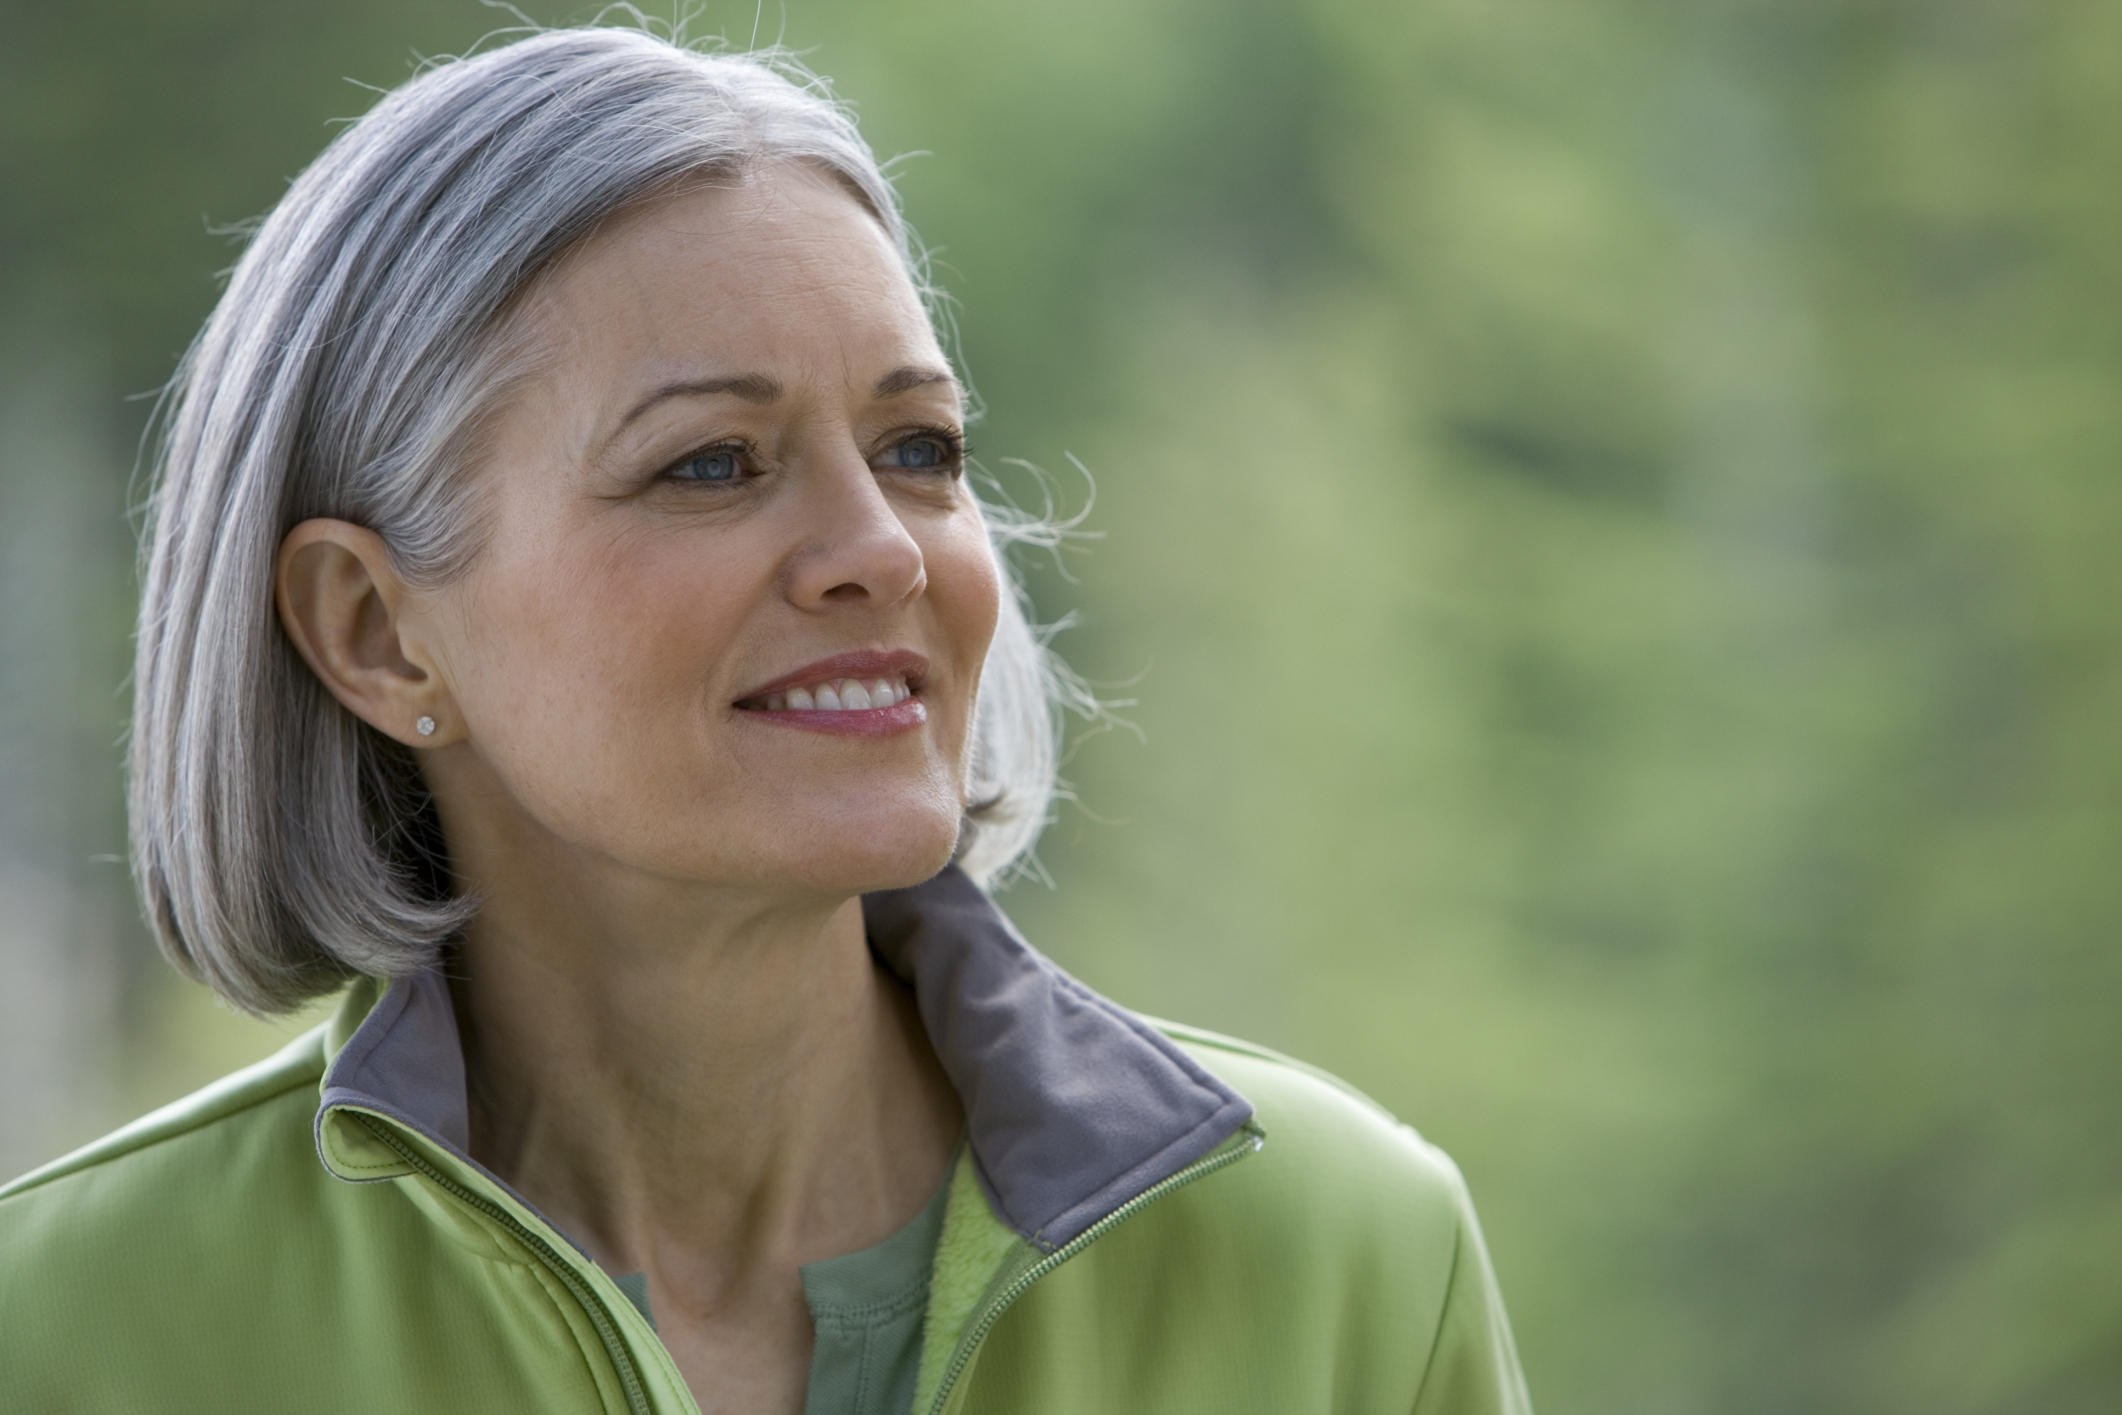 How to stay healthy in your 50s